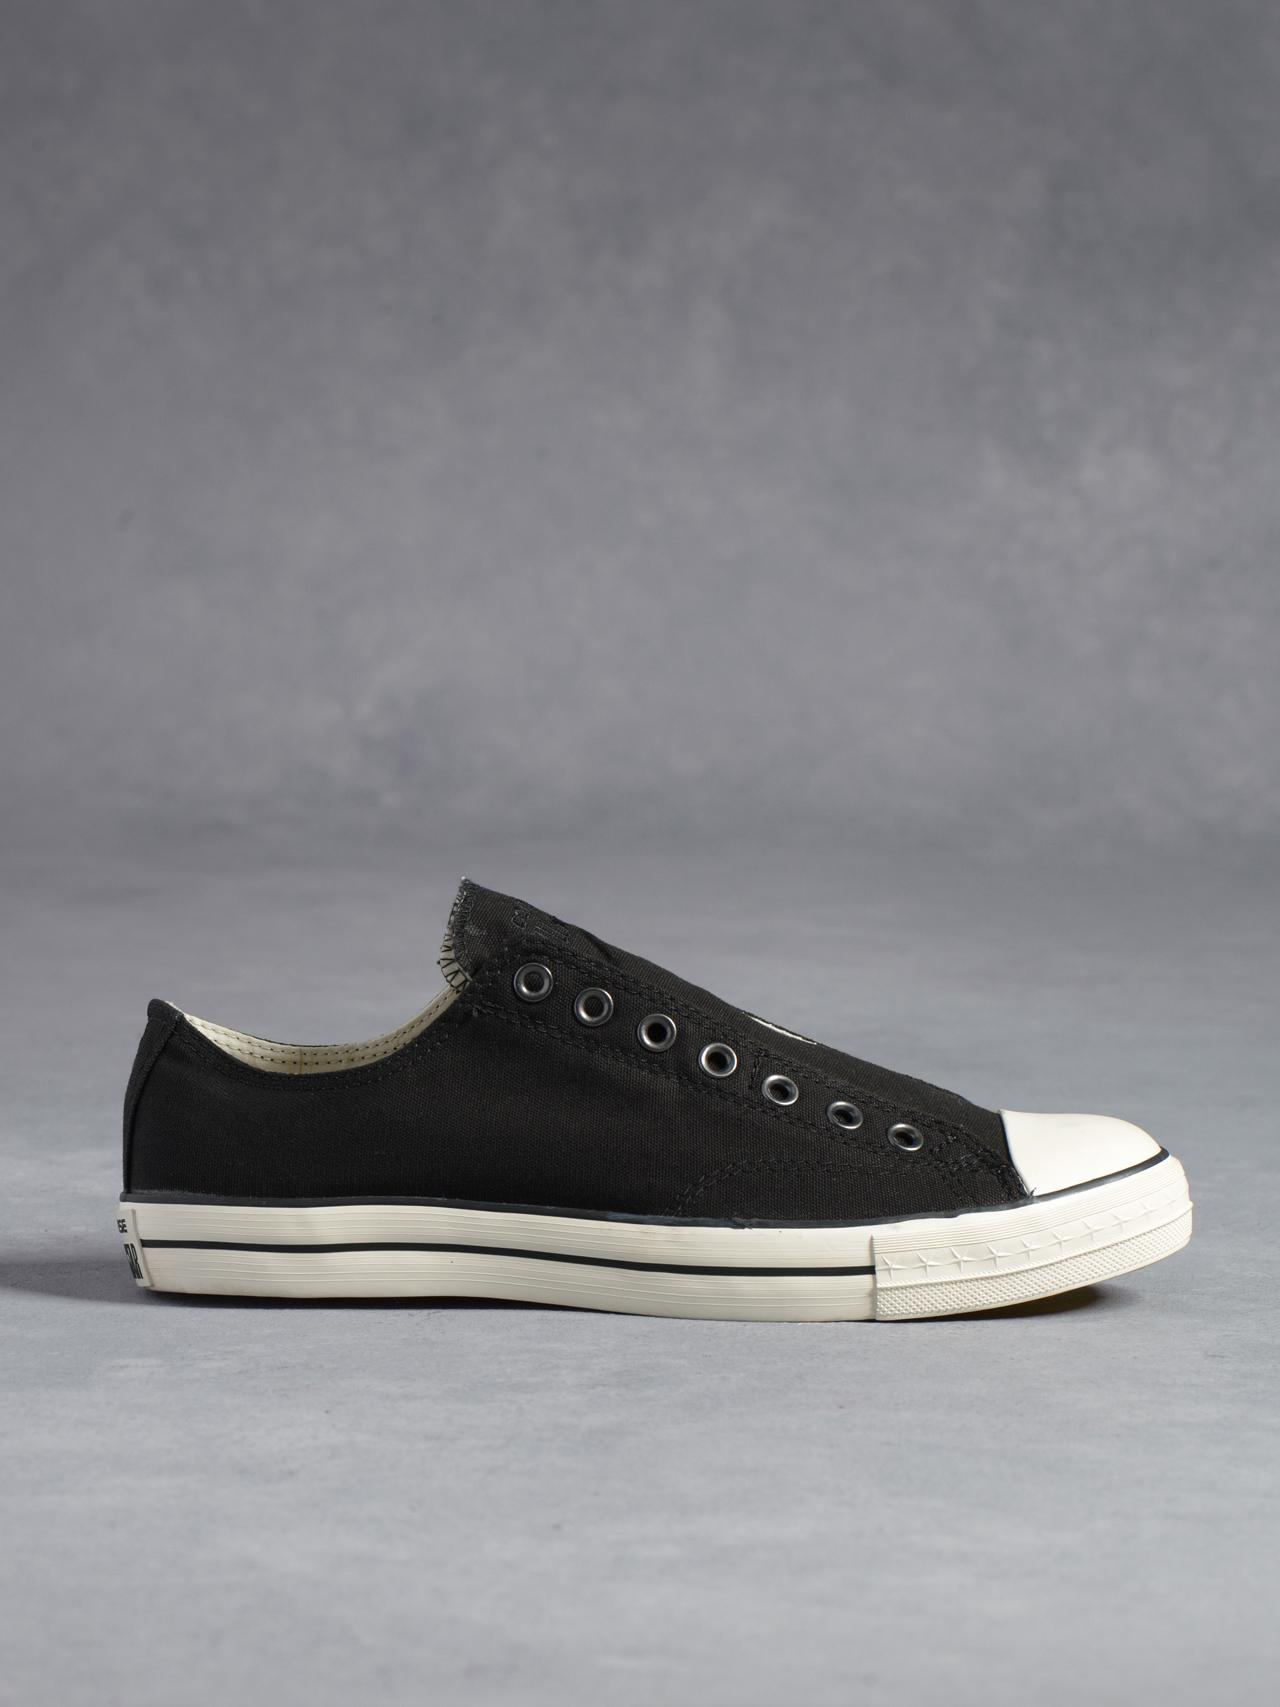 Lyst - John Varvatos Chuck Taylor Low Top Laceless in Black for Men f7fa1620c